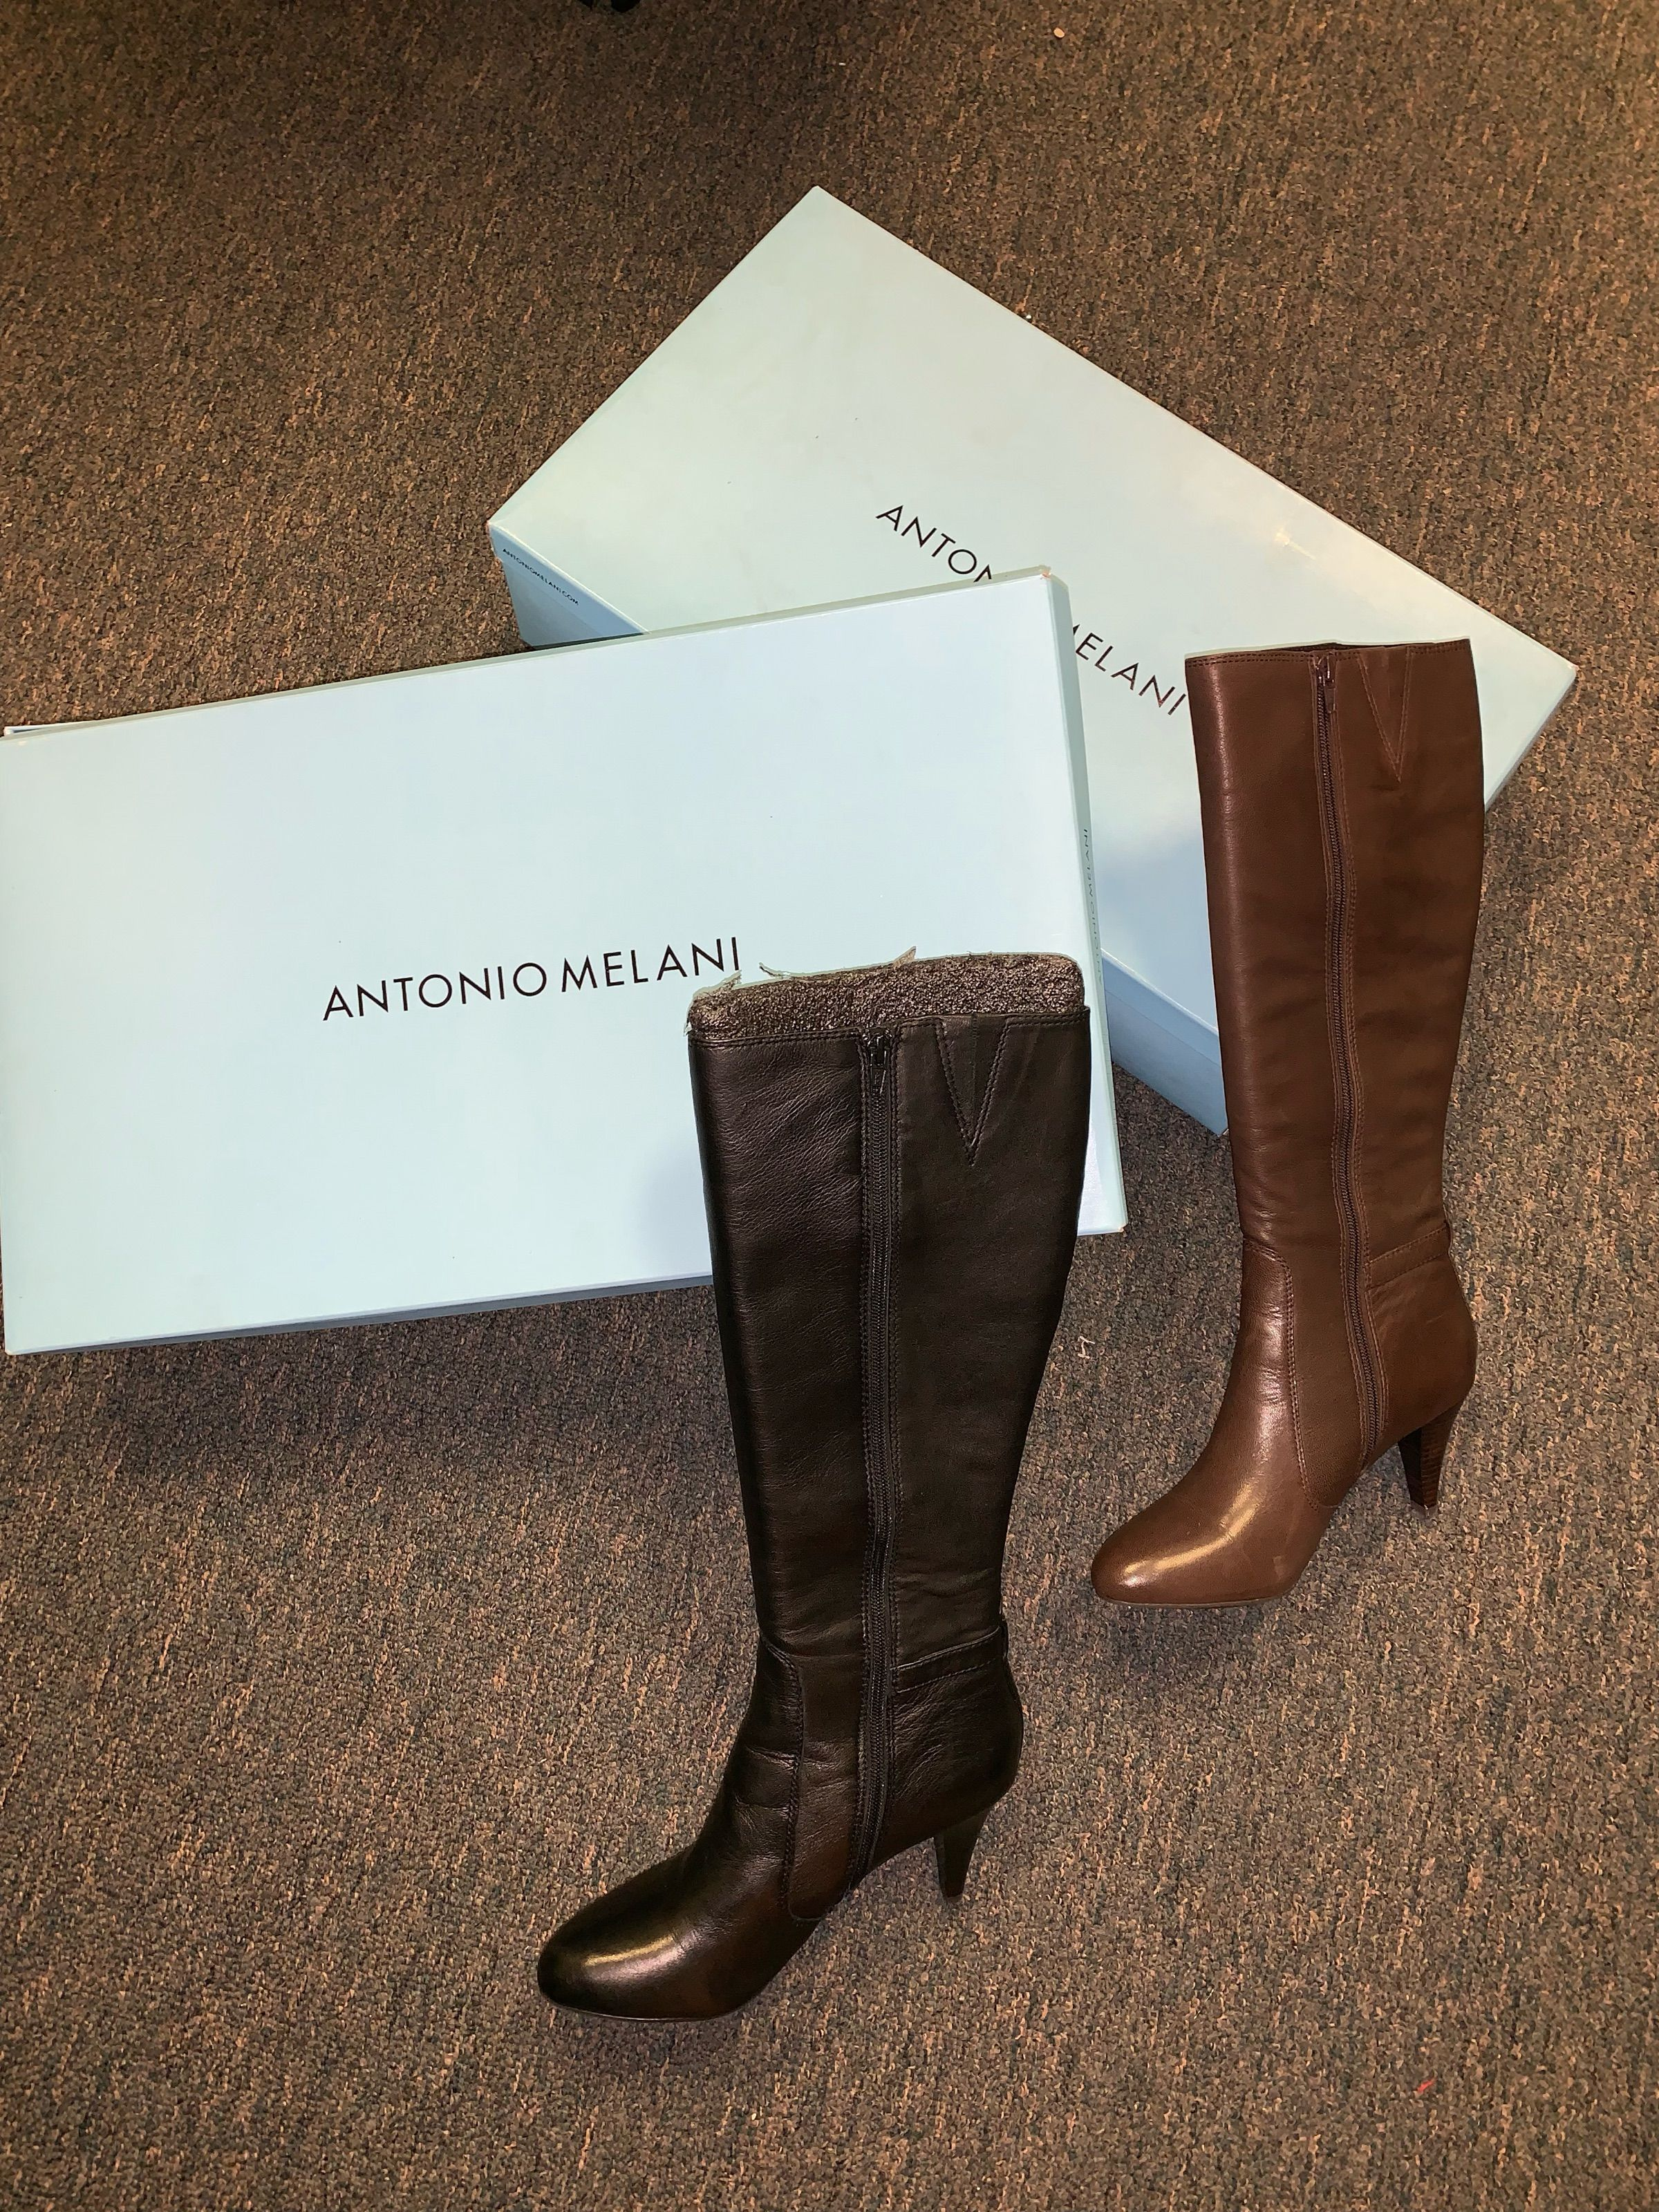 Antonio Melani Boots Available in brown